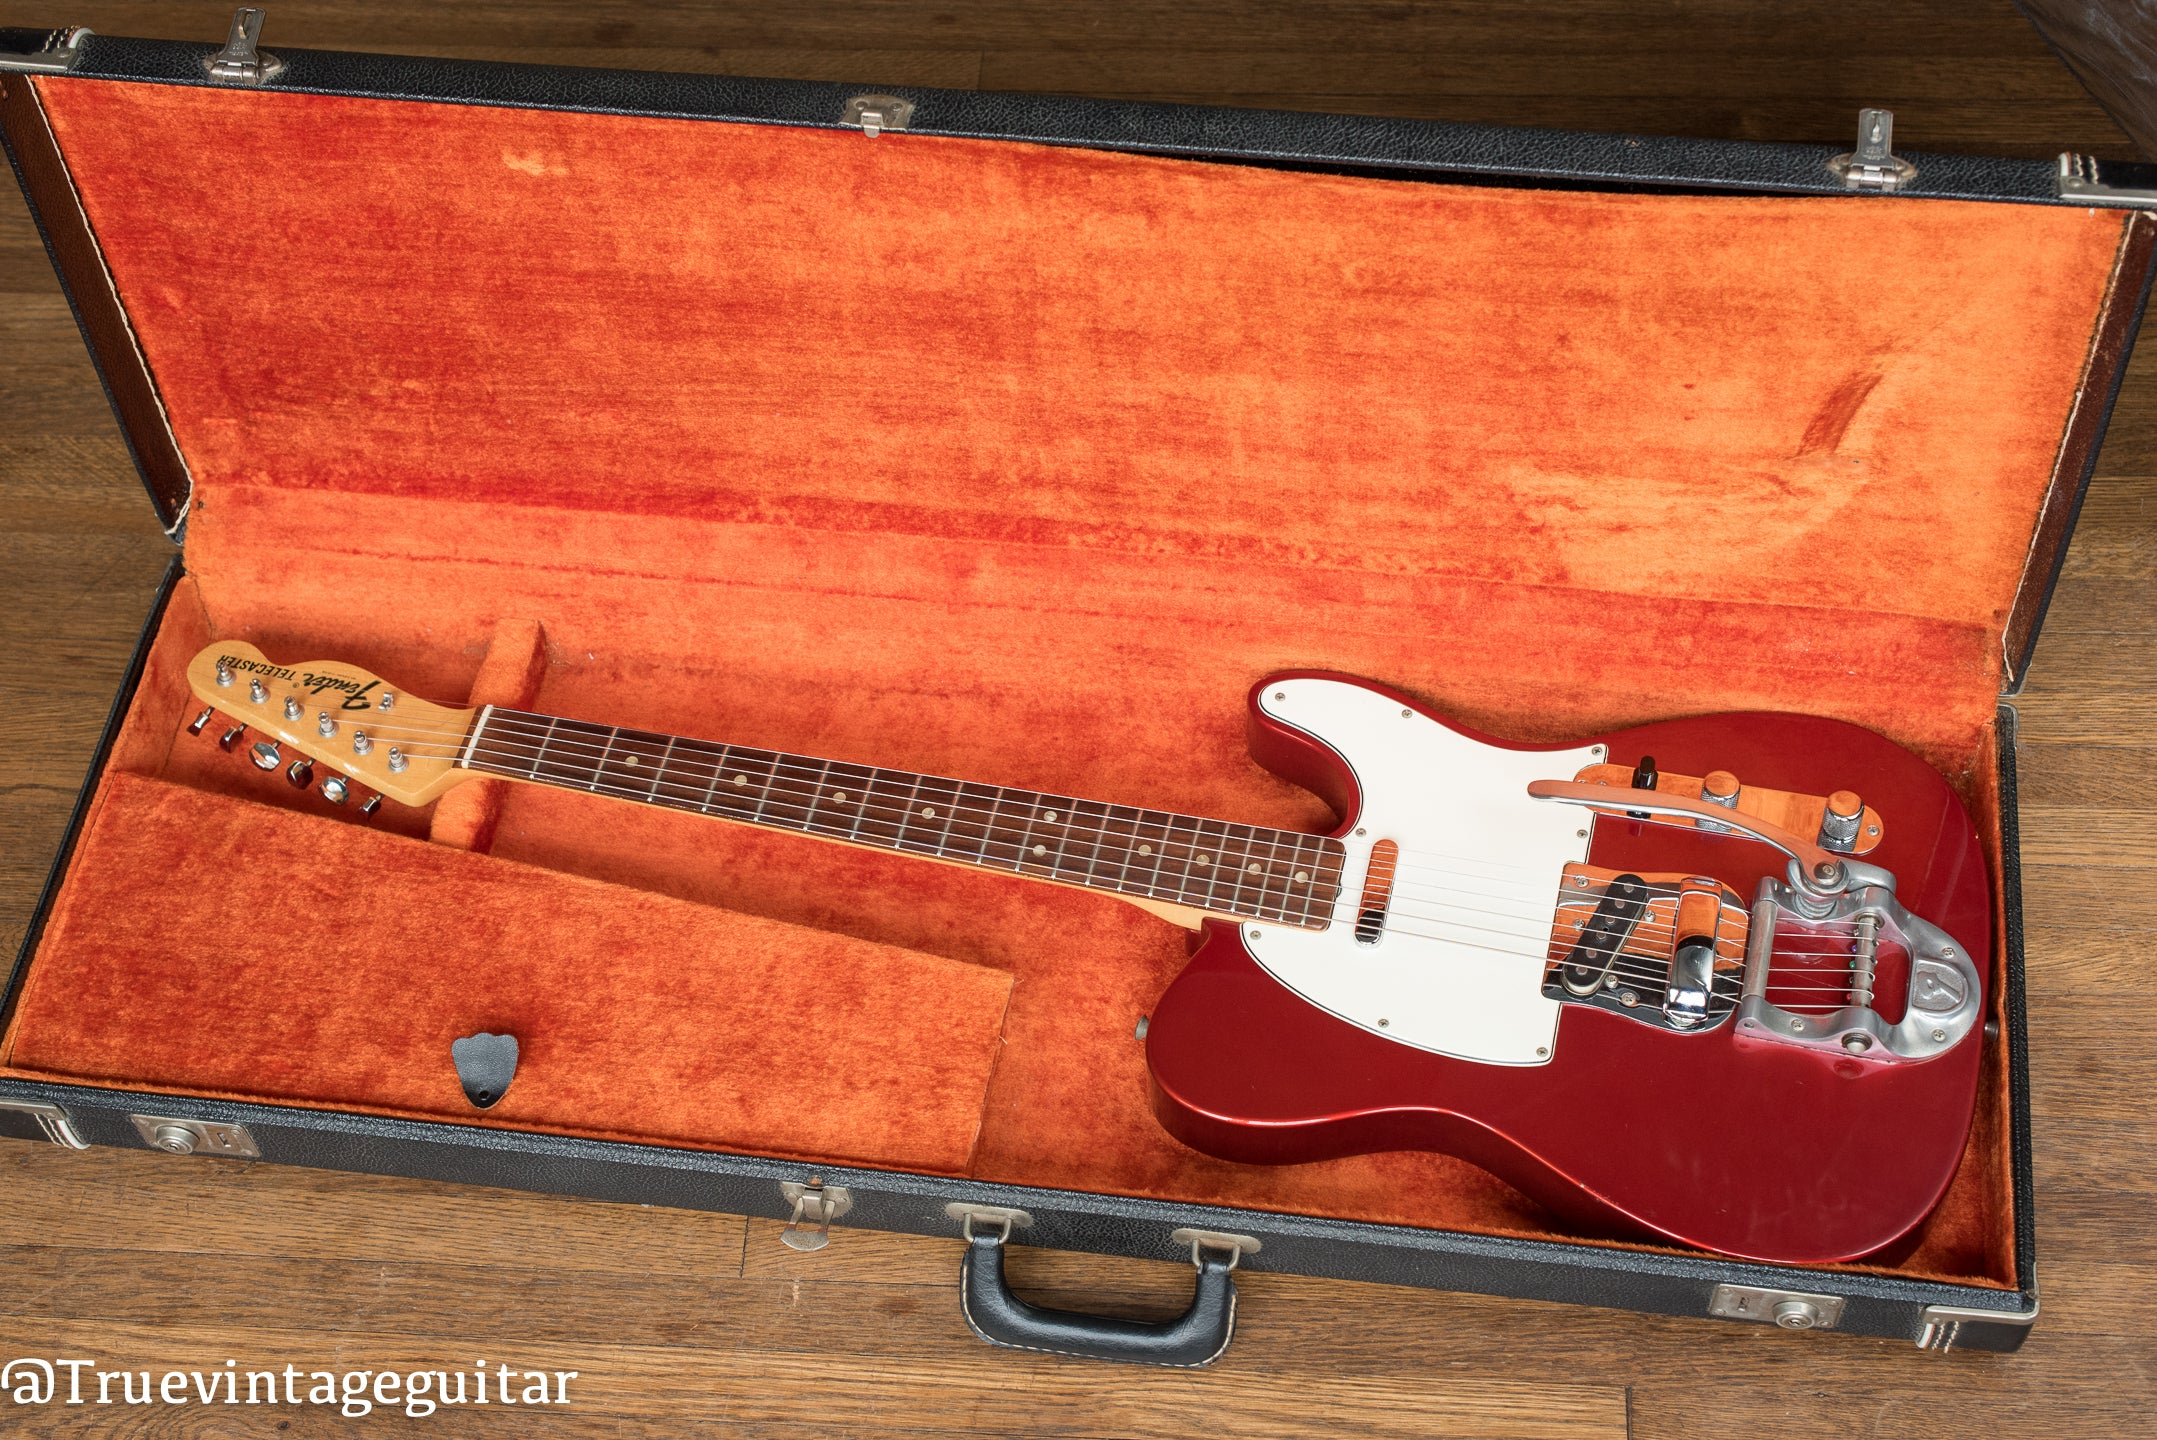 Vintage 1968 Fender Telecaster Candy Apple Red Metallic Bigsby electric guitar in original case